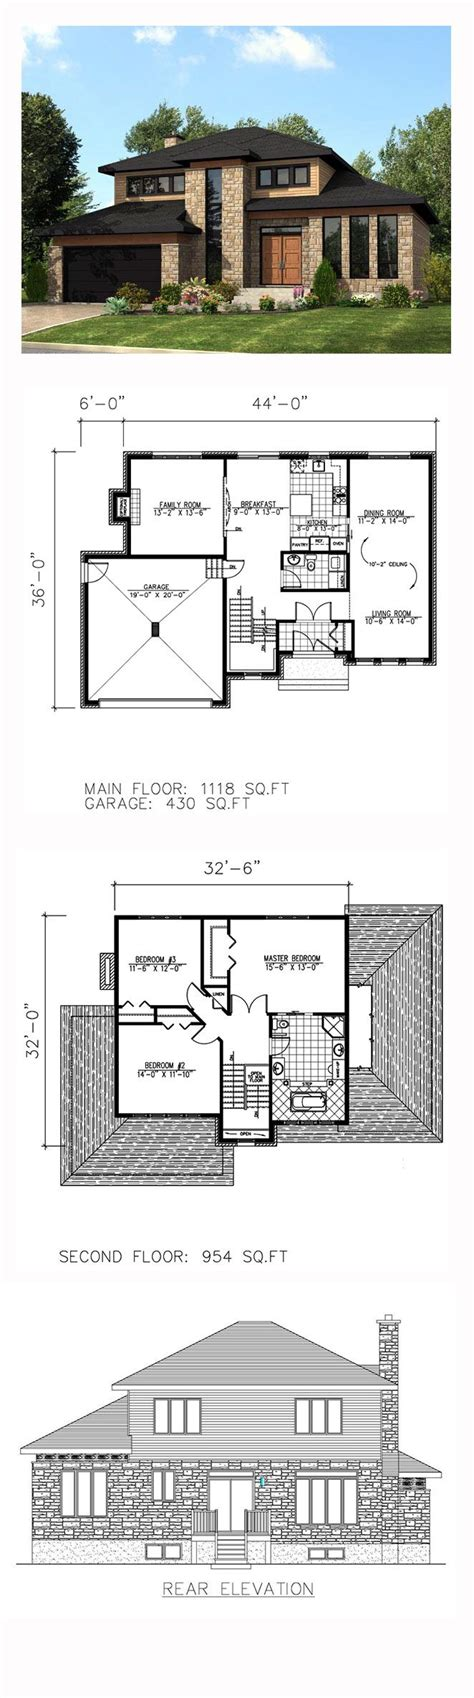 floor plan modern family house best 25 modern house plans ideas on pinterest modern